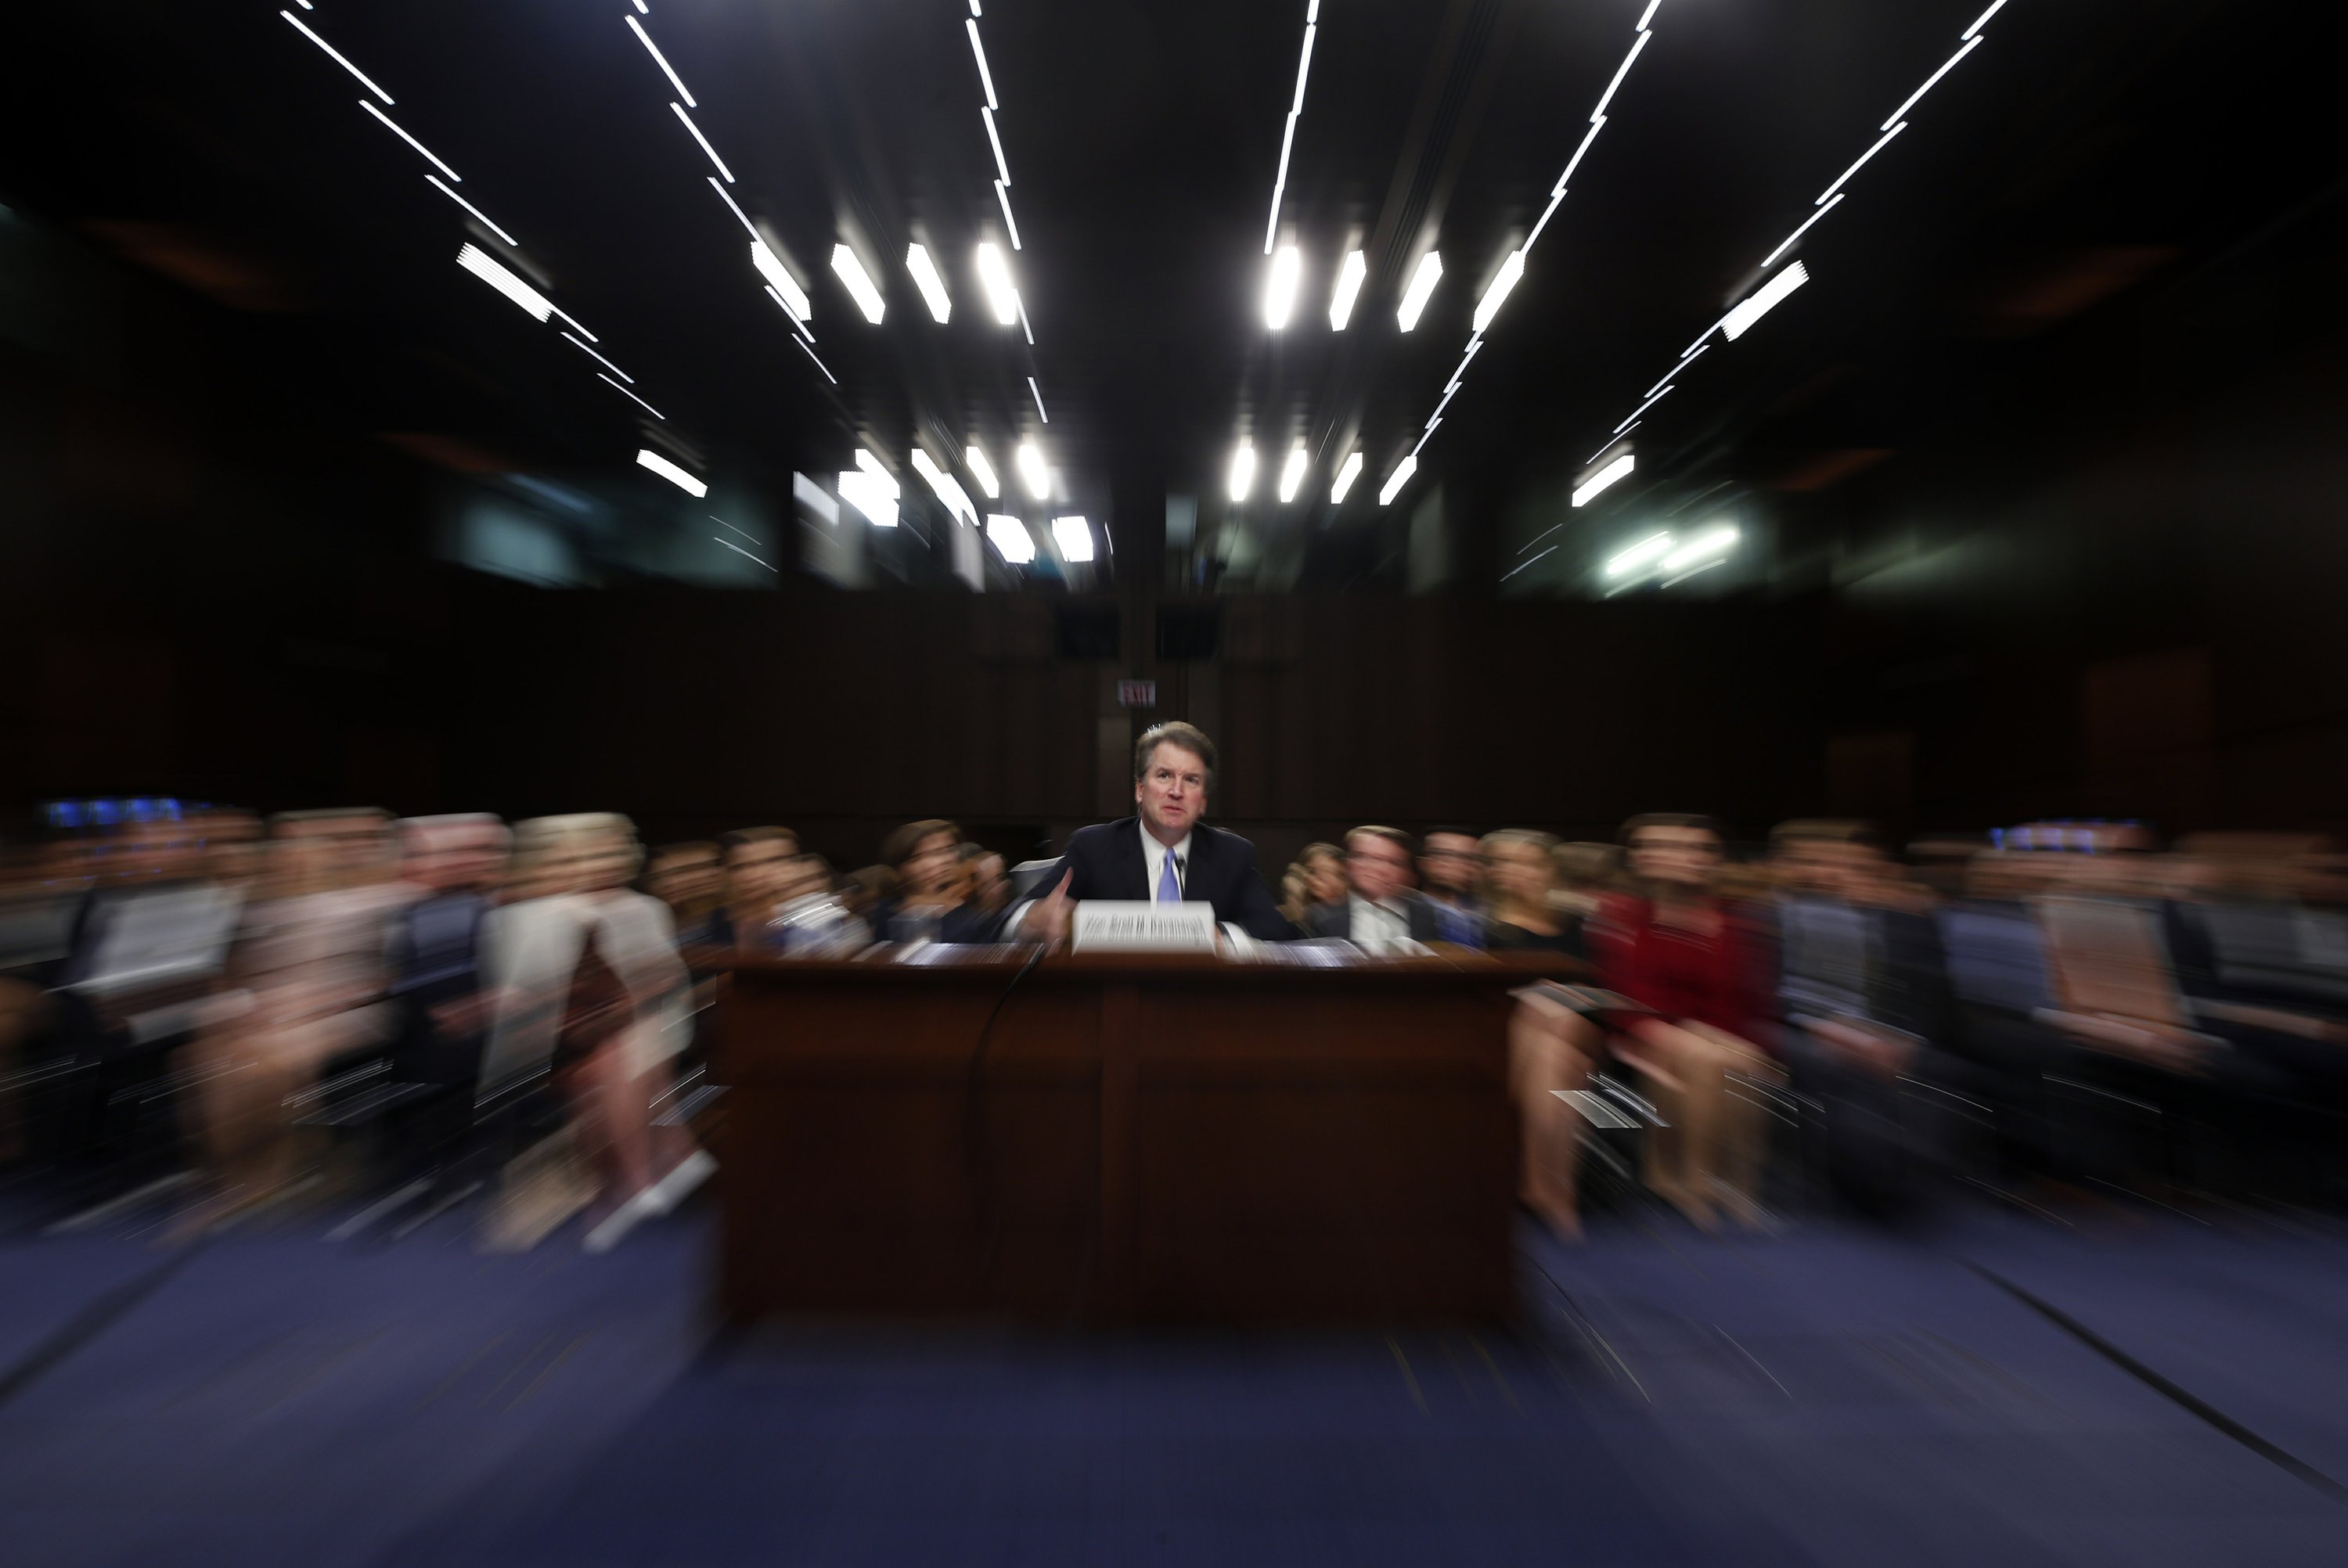 Memory's frailty may be playing role in Kavanaugh matter